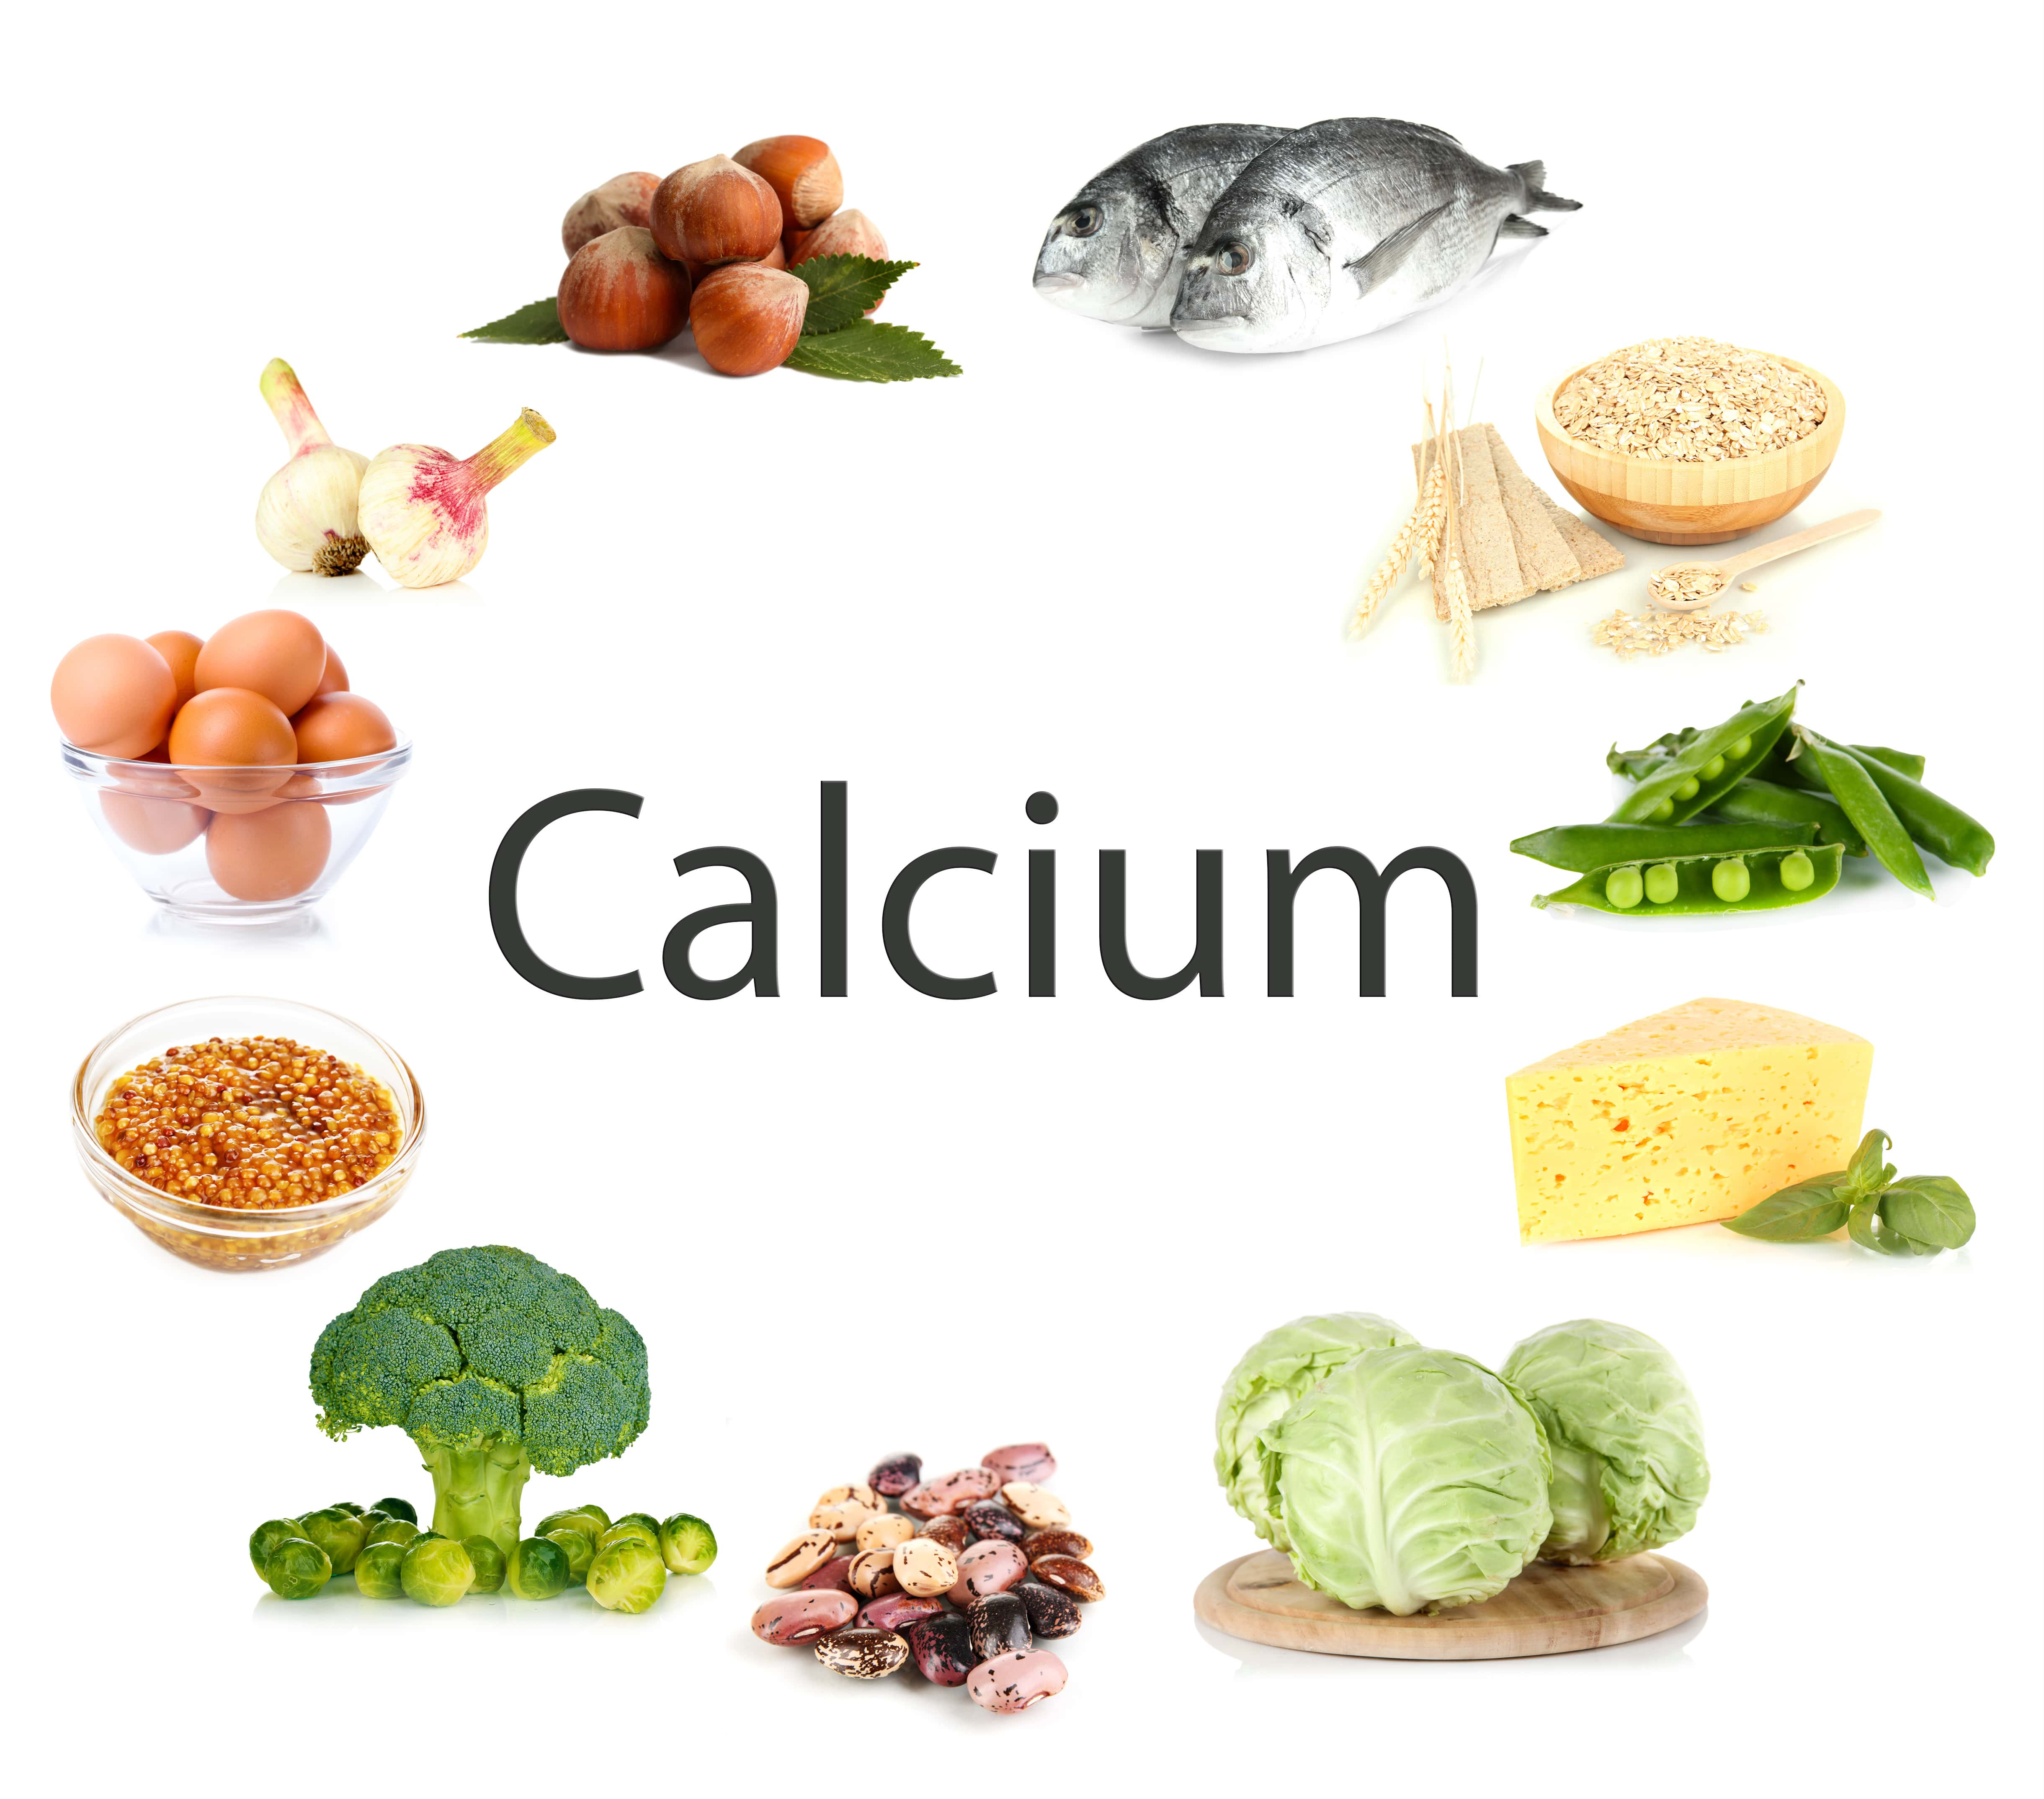 Foods with calcium